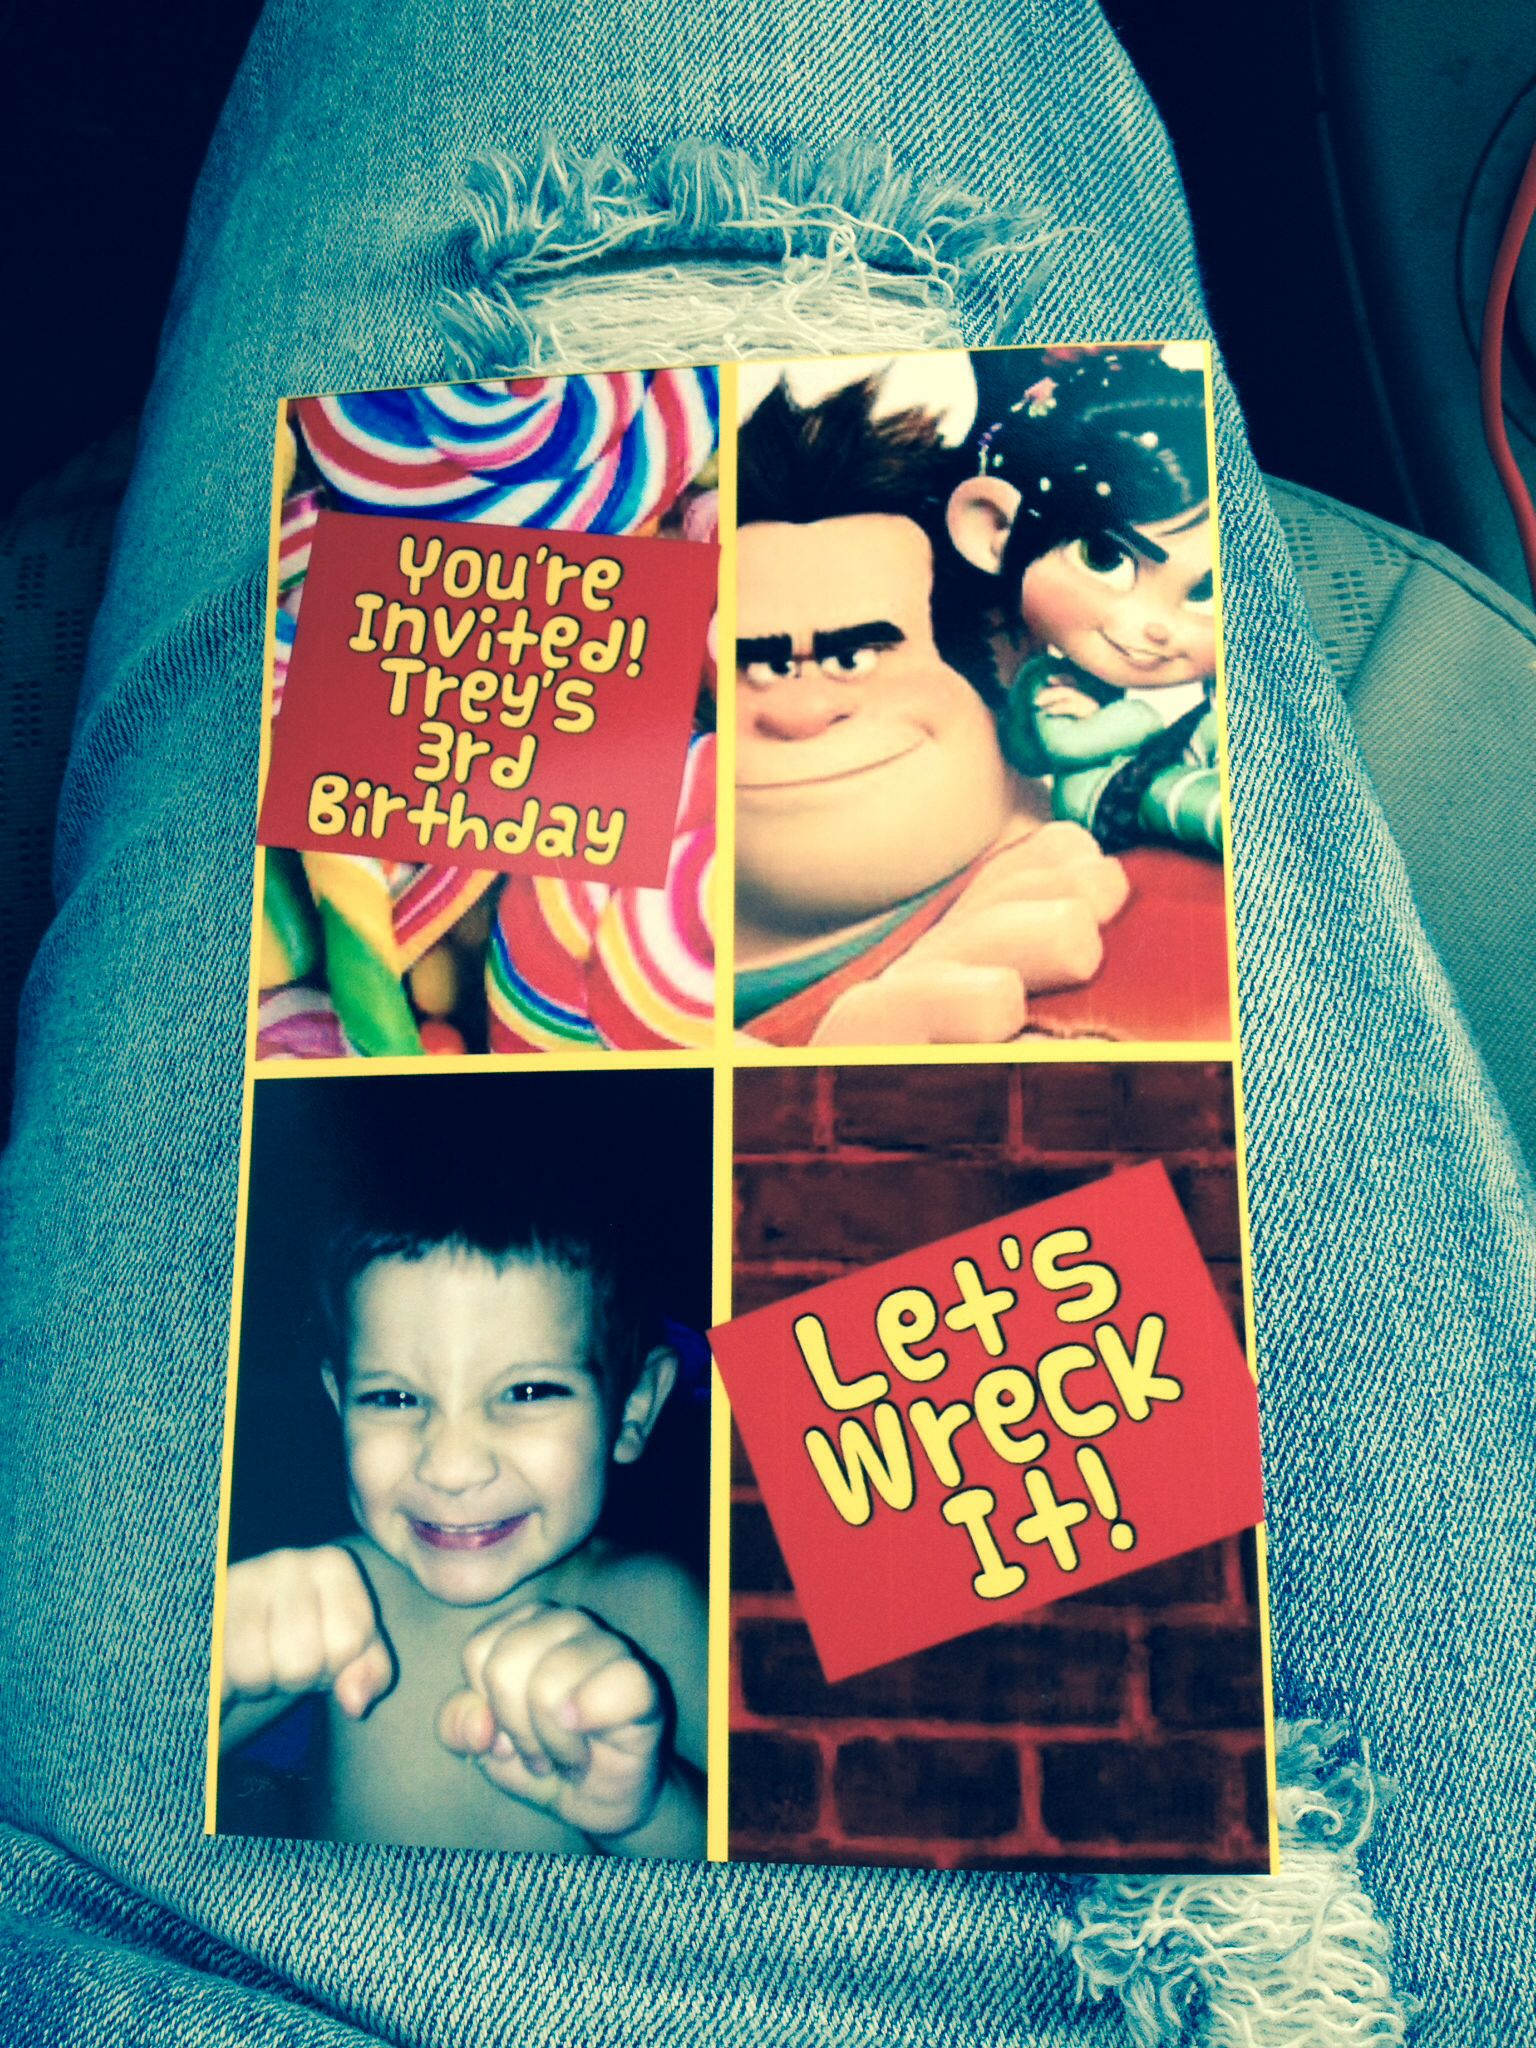 3rd Birthday Invitation For Wreck It Ralph Party Made With Photo Collage App On IPhone Ordered Snapfish